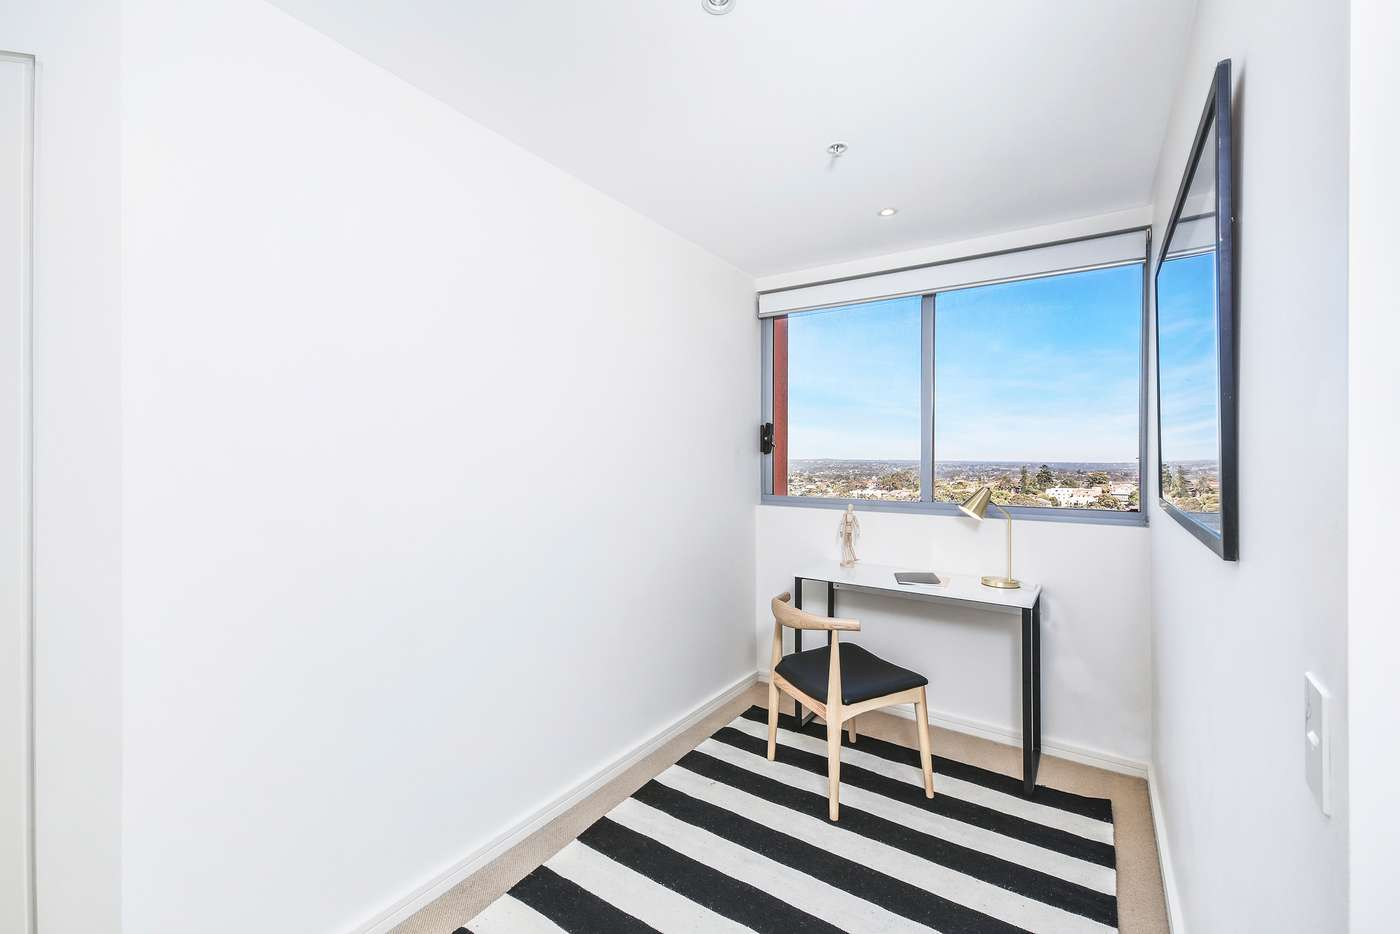 Sixth view of Homely apartment listing, 801A/1 Jack Brabham Drive, Hurstville NSW 2220